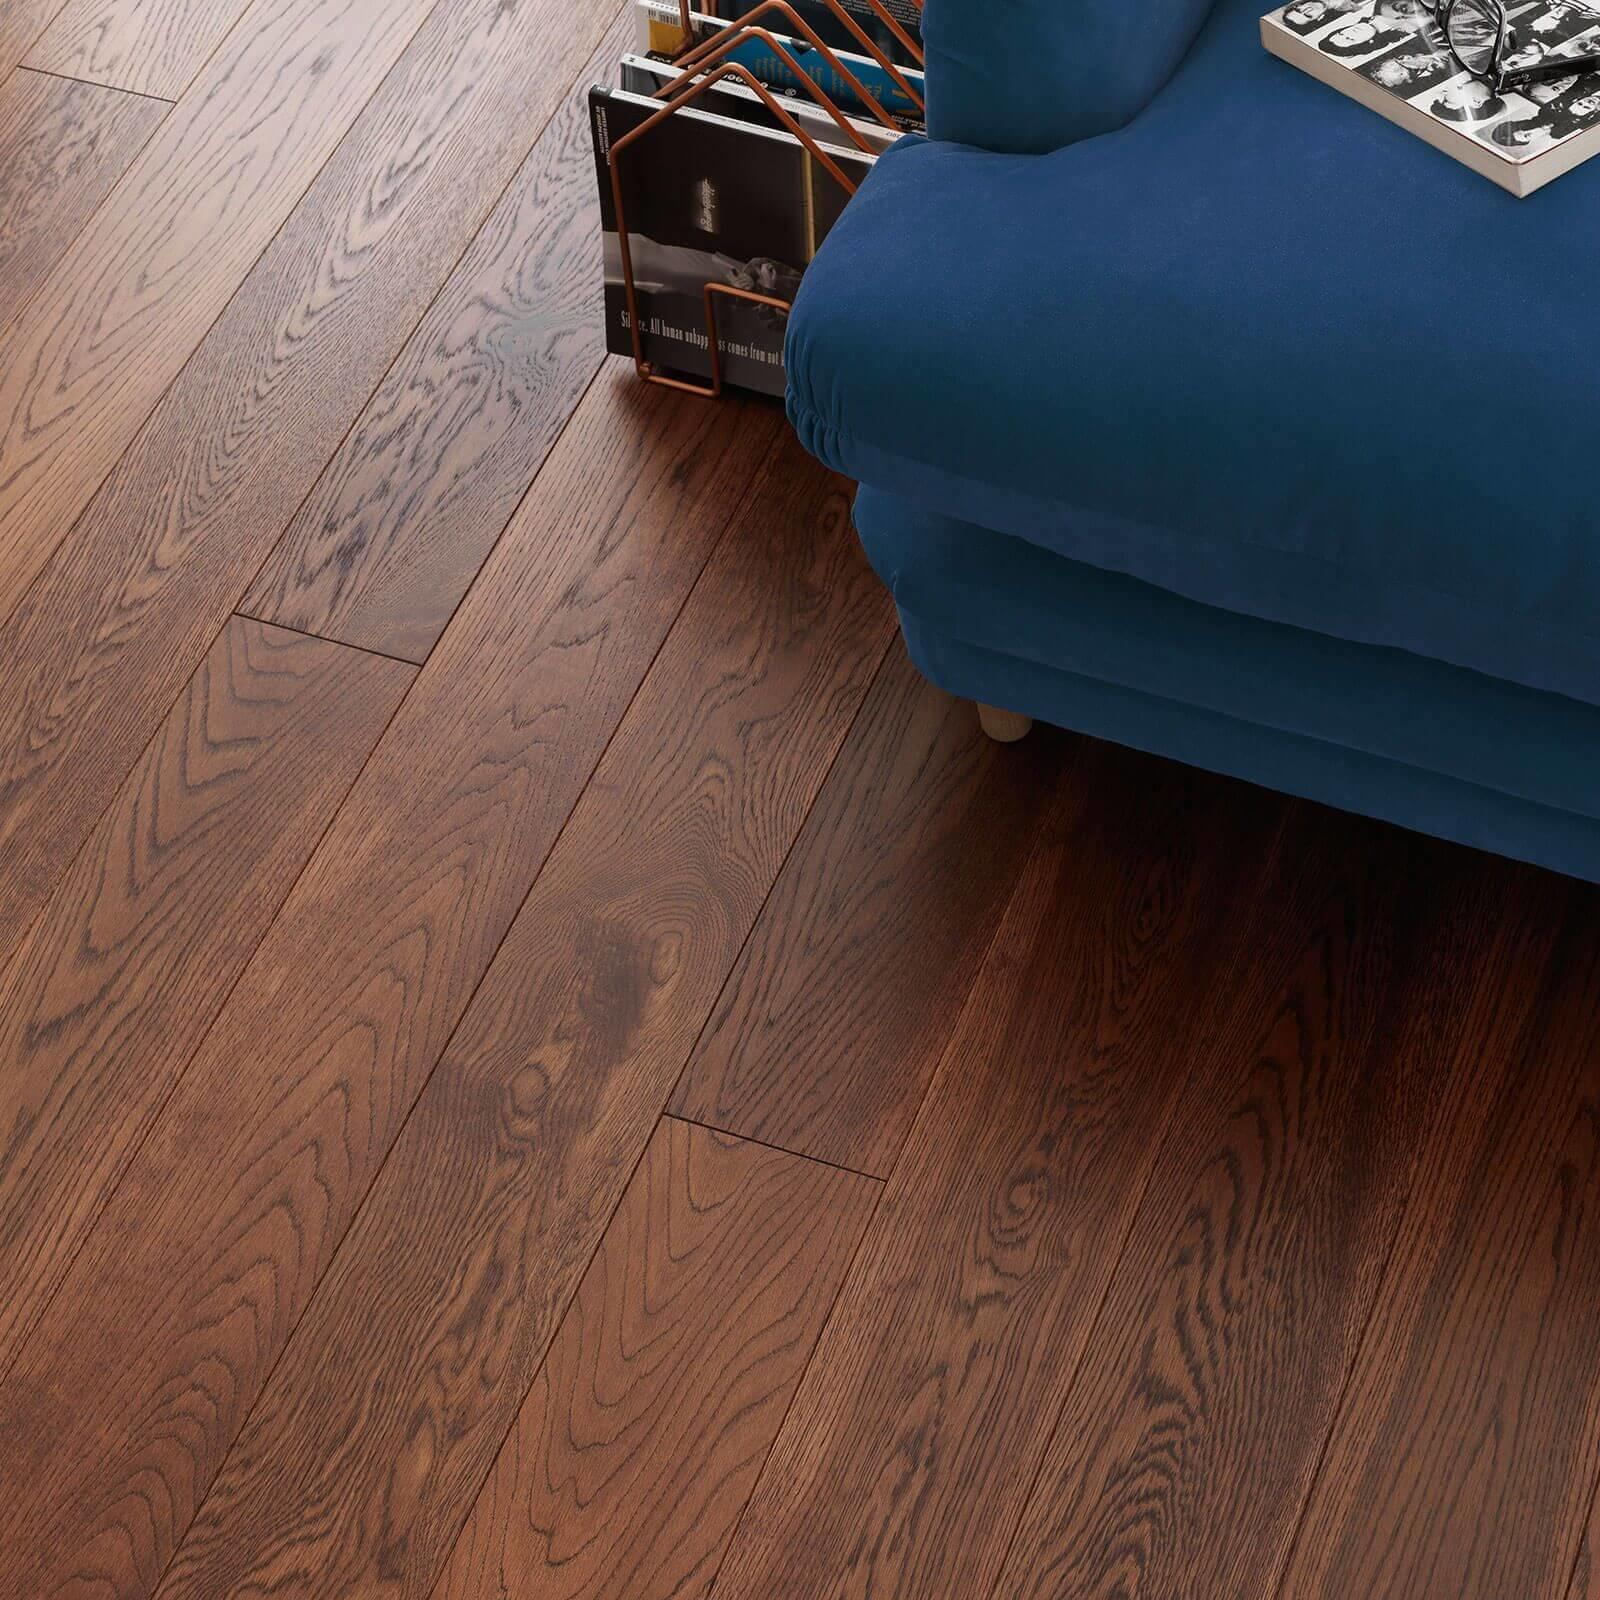 Woodpecker Harlech Cognac Oak Brushed & Matt Lacquered Engineered Wood Flooring 150mm 35-HOC-001